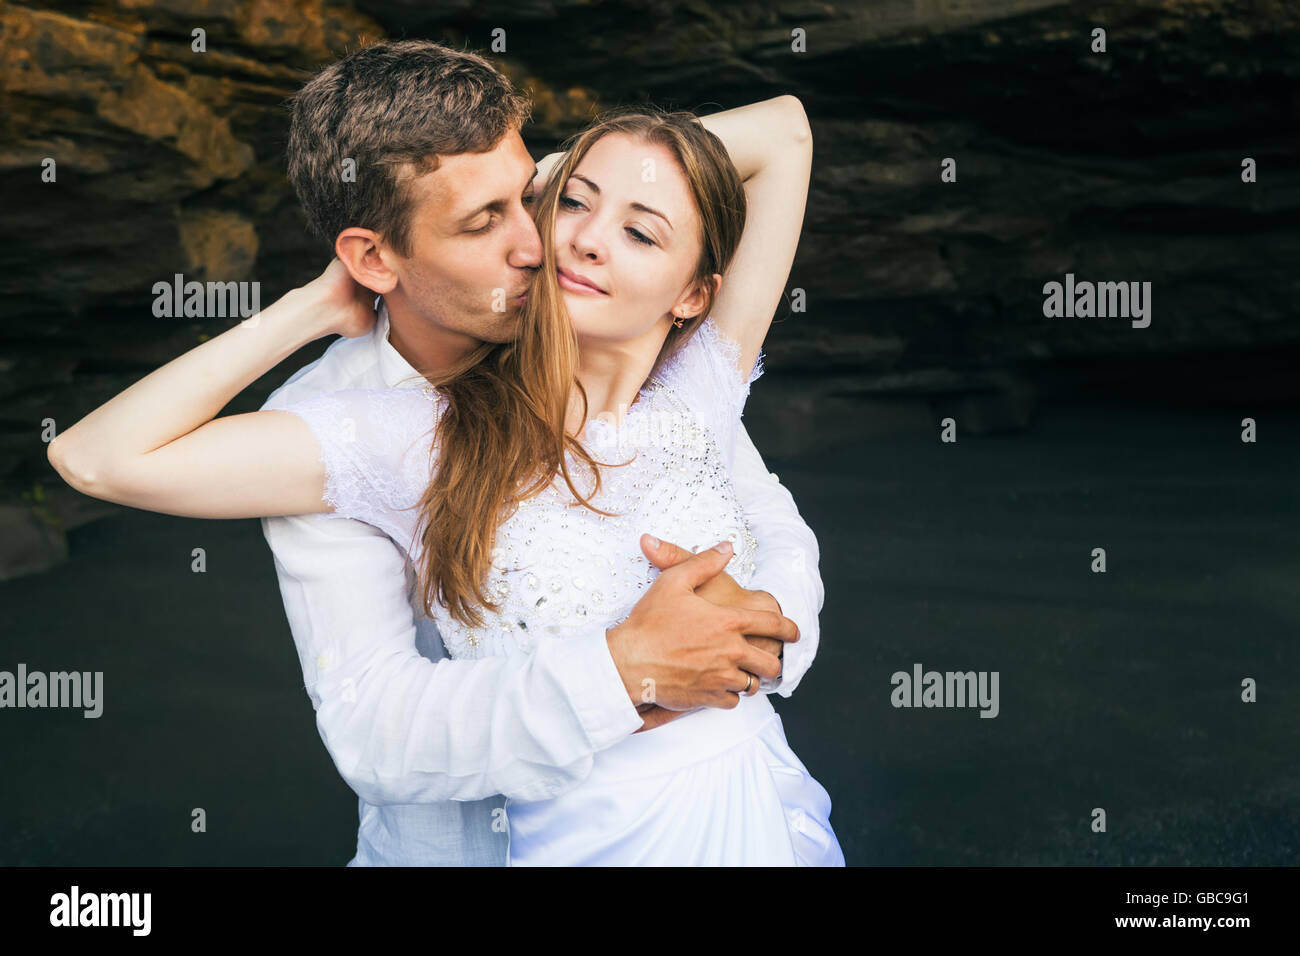 Happy family on honeymoon holiday - just married young man and woman hug with smile on black sand beach with rock Stock Photo